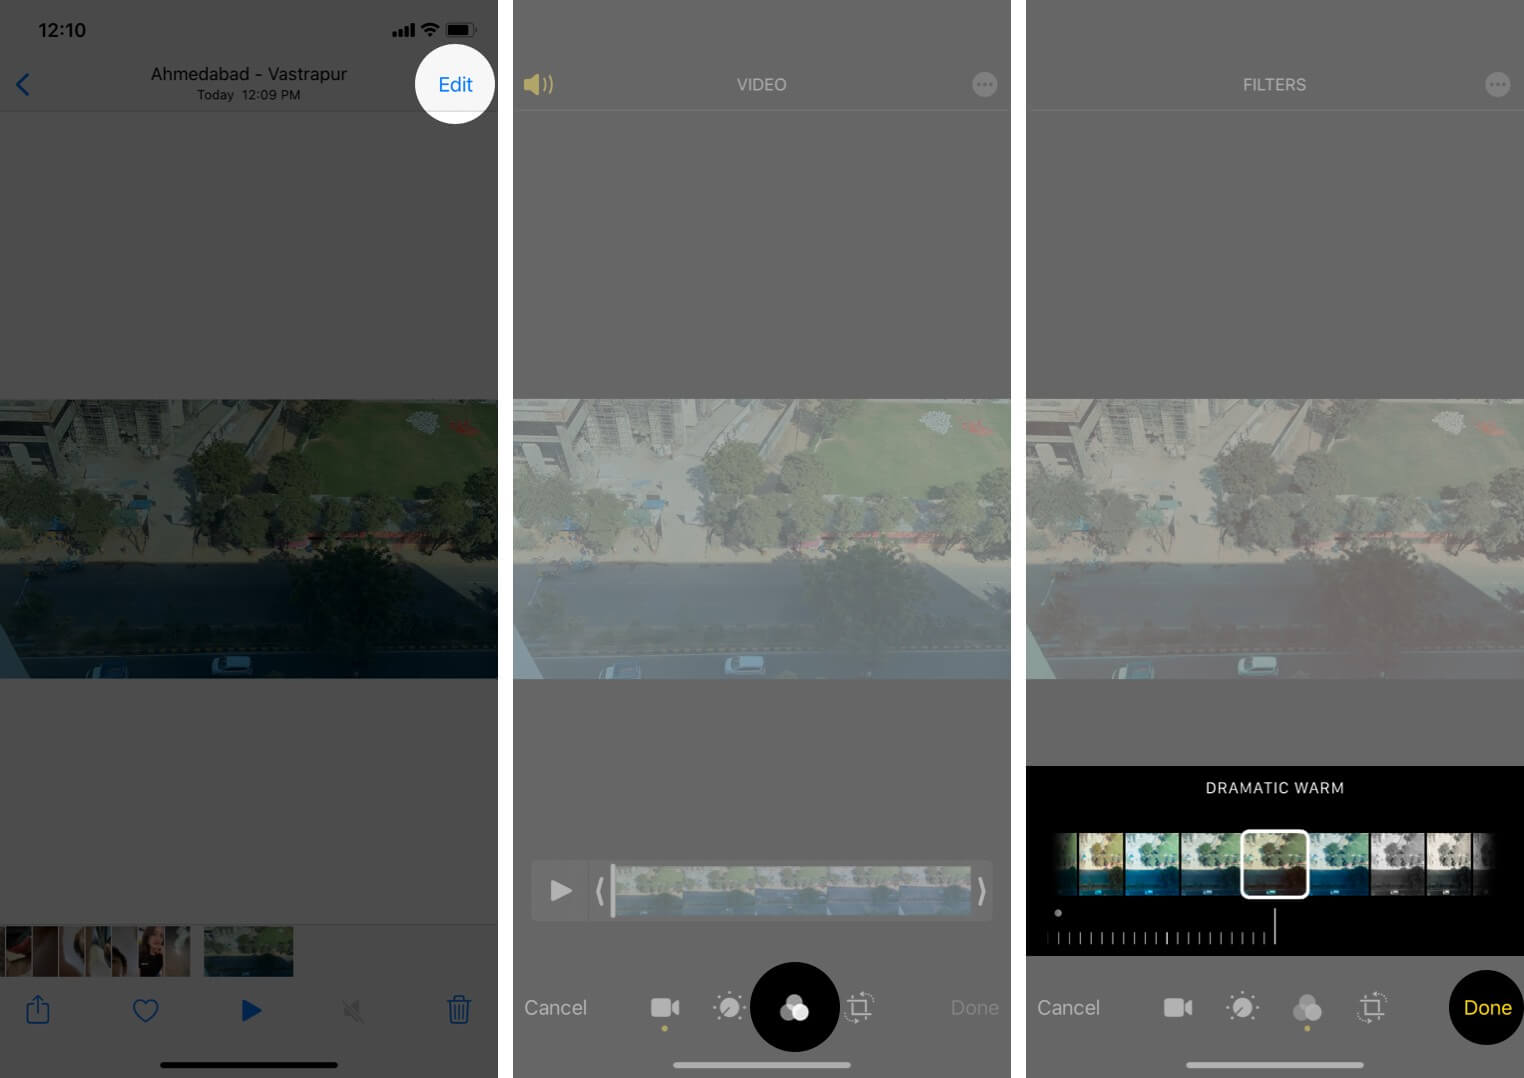 Apply Filter to Video on iPhone